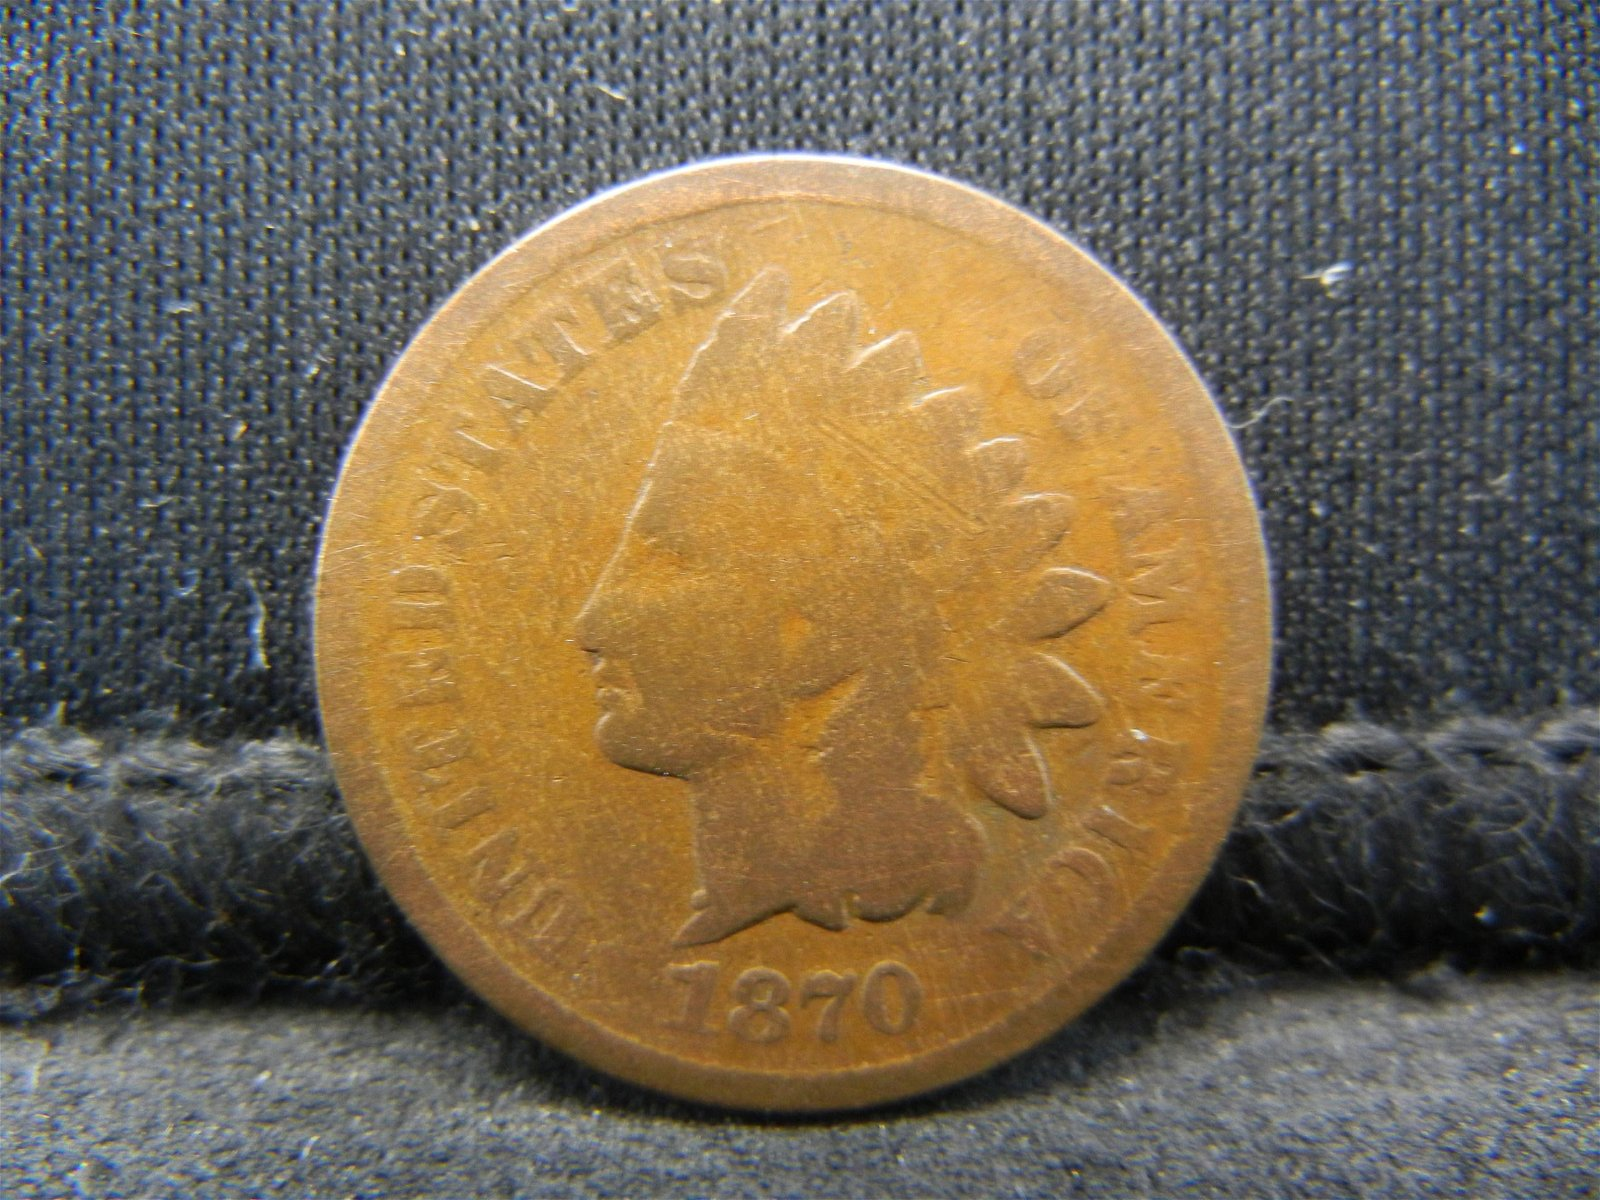 1870 United States Indian Head Penny Cent